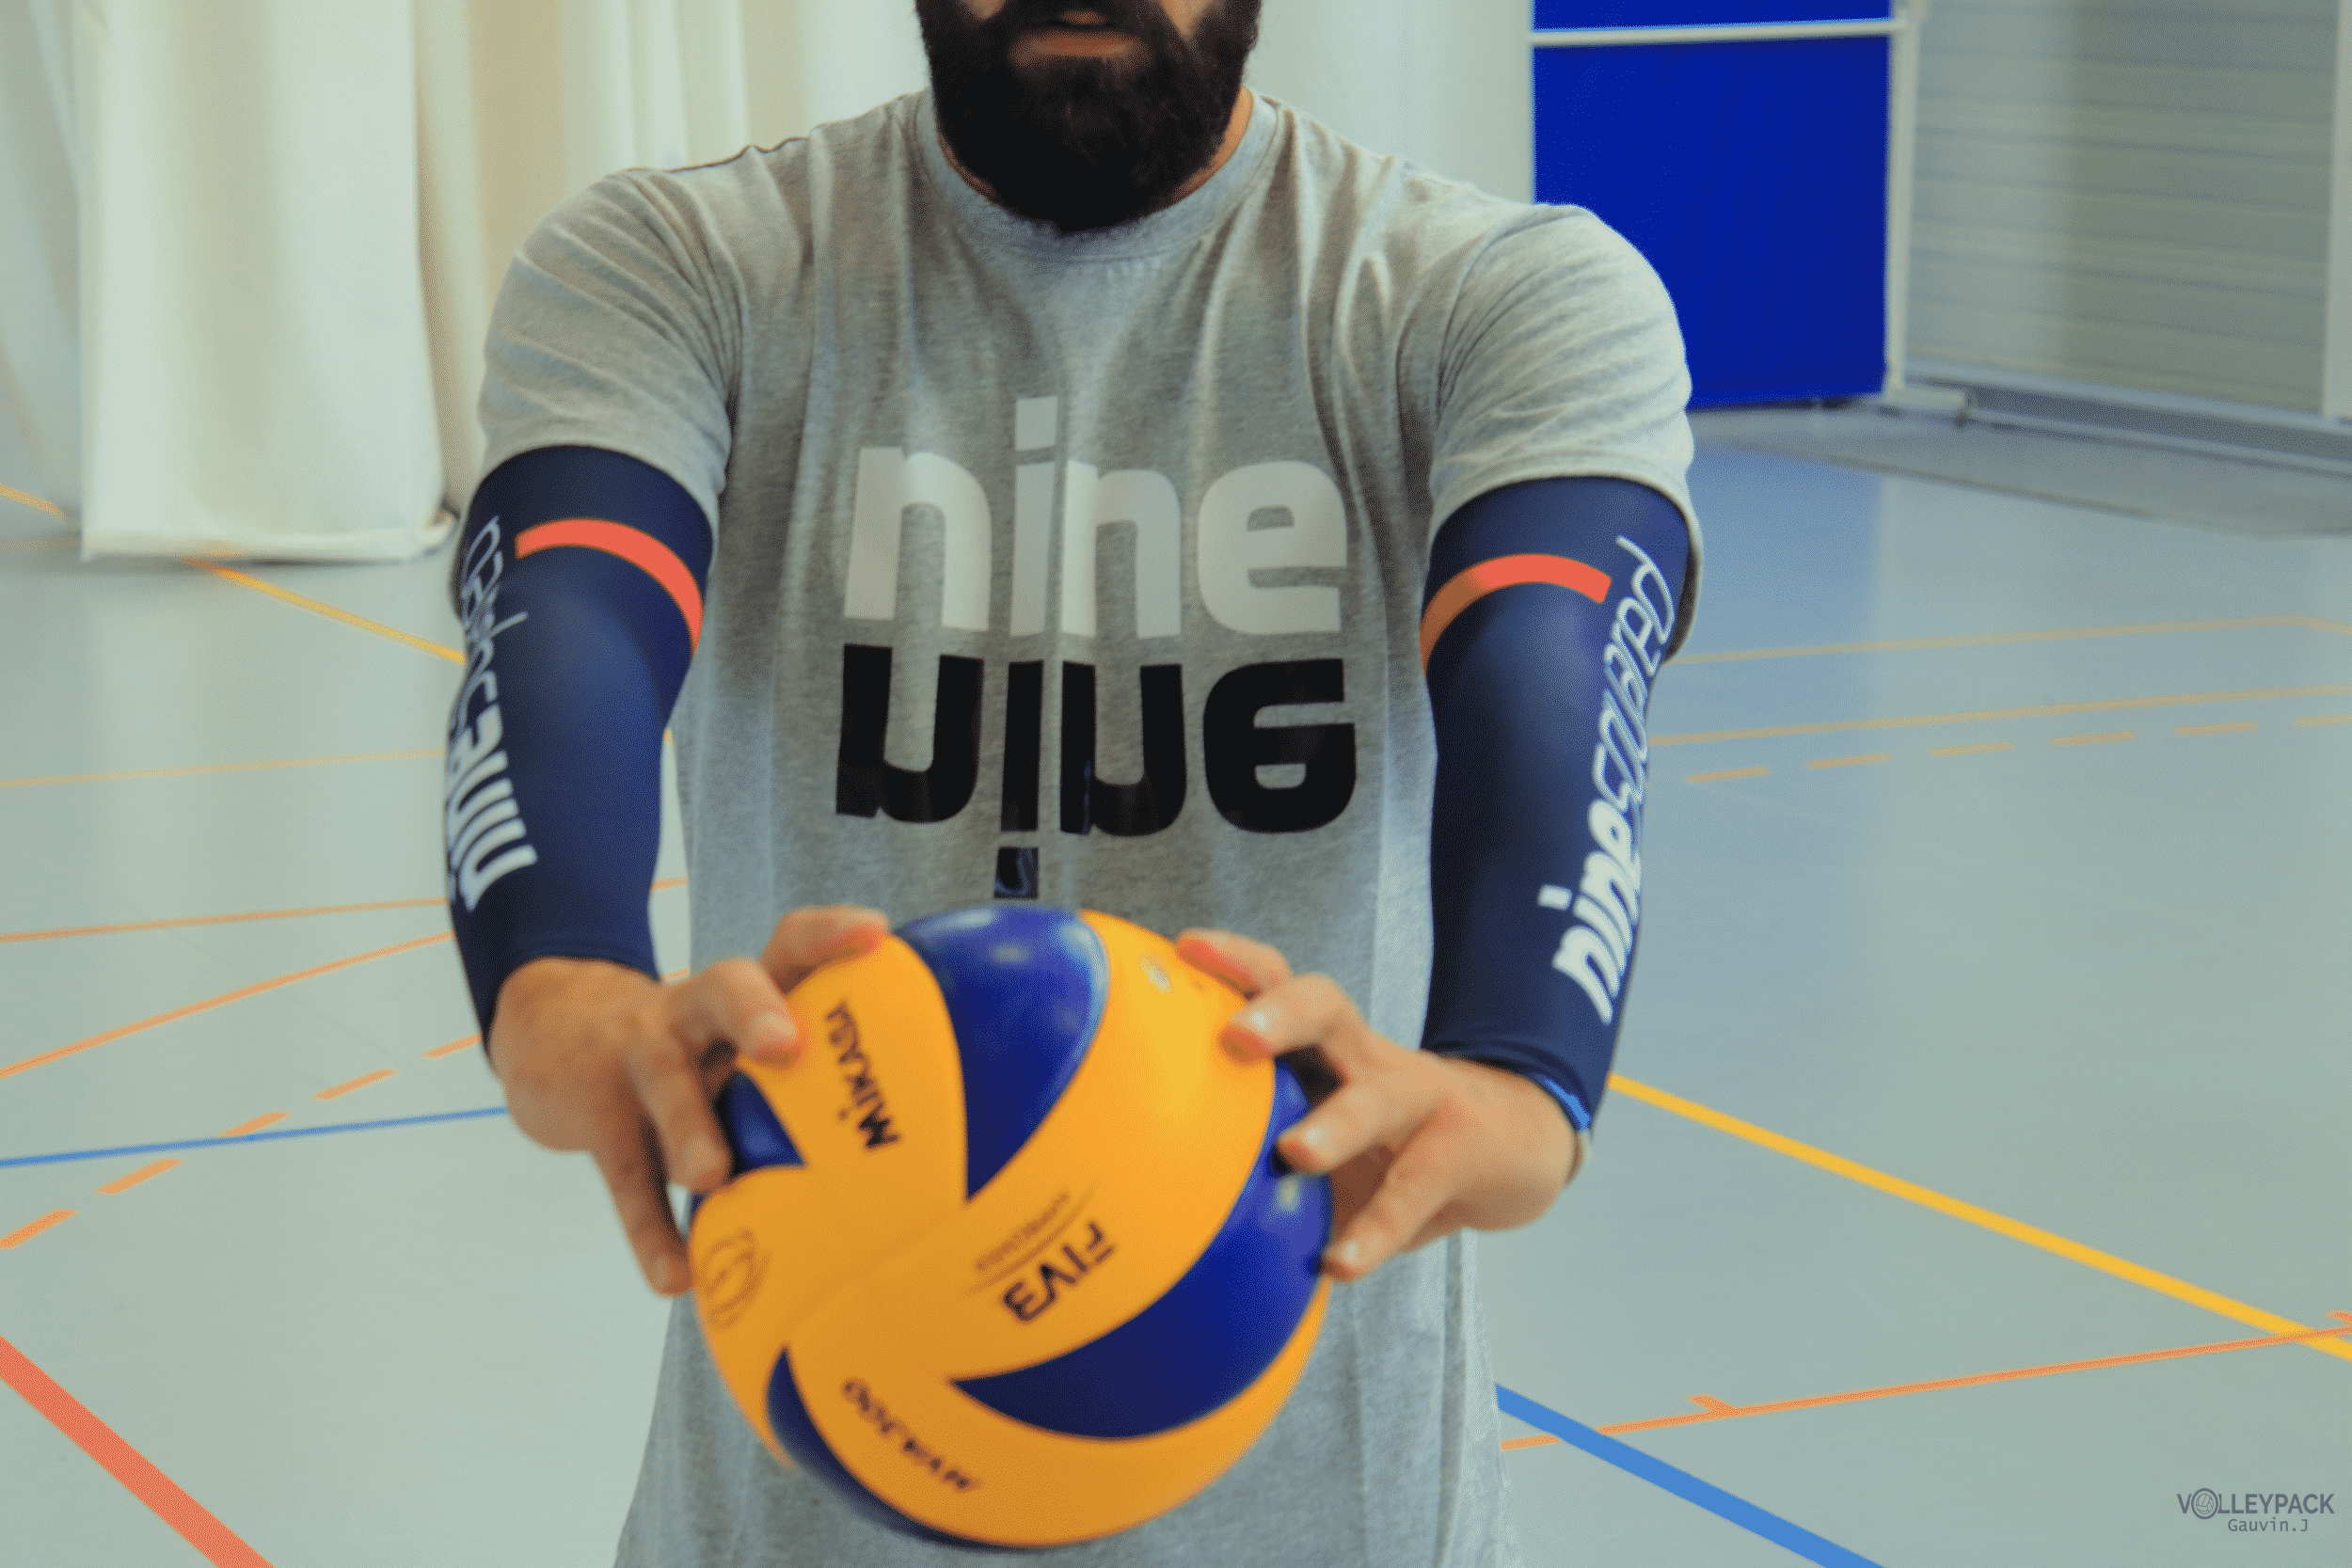 test-volleypack-manchons-volley-ninesquared-arm-sleeves-2019-12